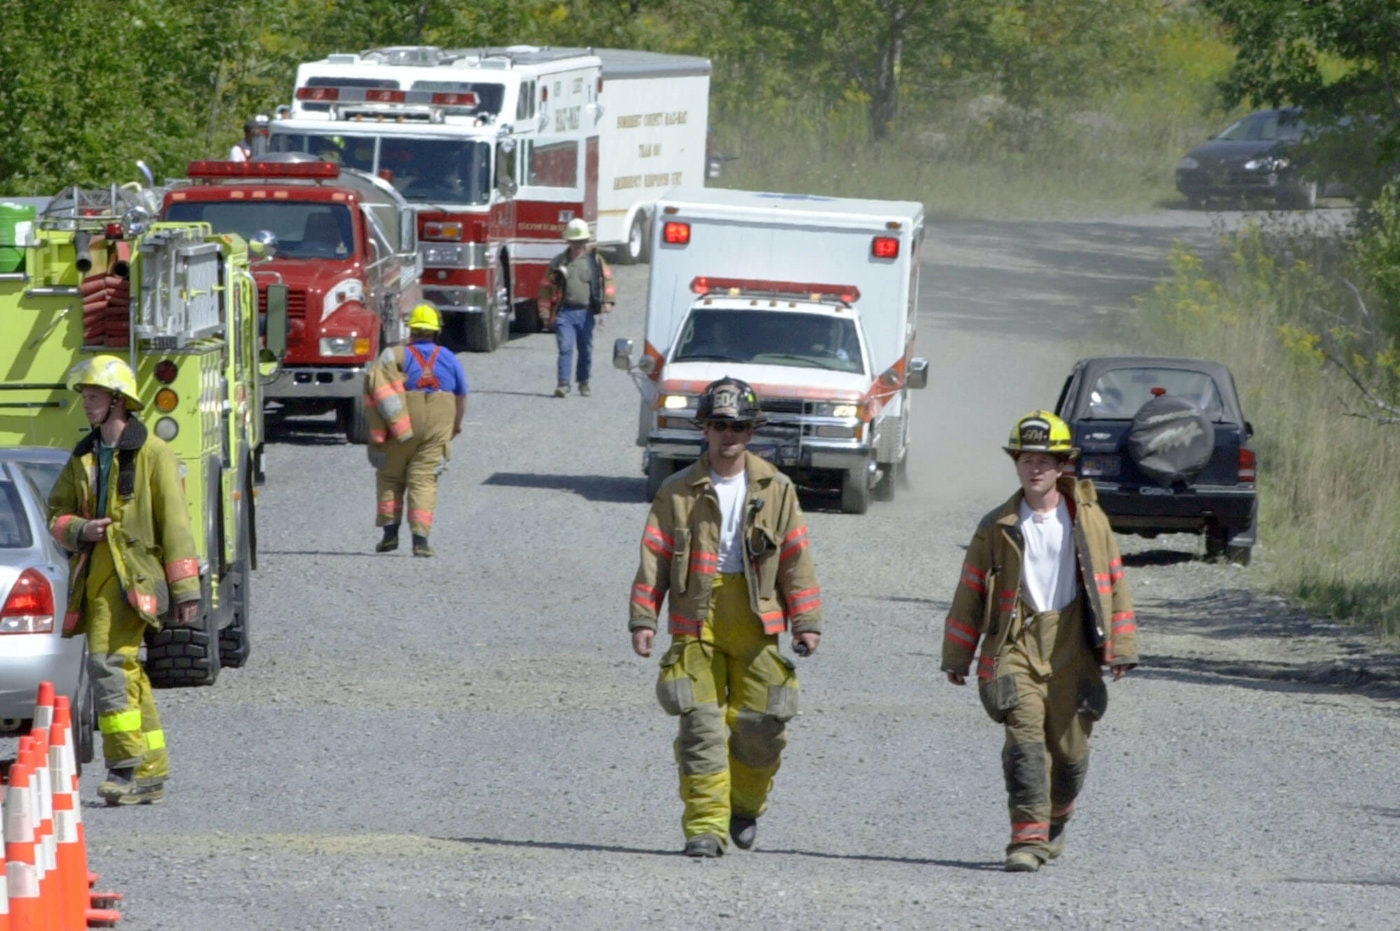 FILE - In this Tuesday, Sept. 11, 2001 file photo, an ambulance drives behind two firemen as they walk along the road near the crash scene of the United Airlines jet that crashed near Shanksville. (AP Photo/Keith Srakocic)